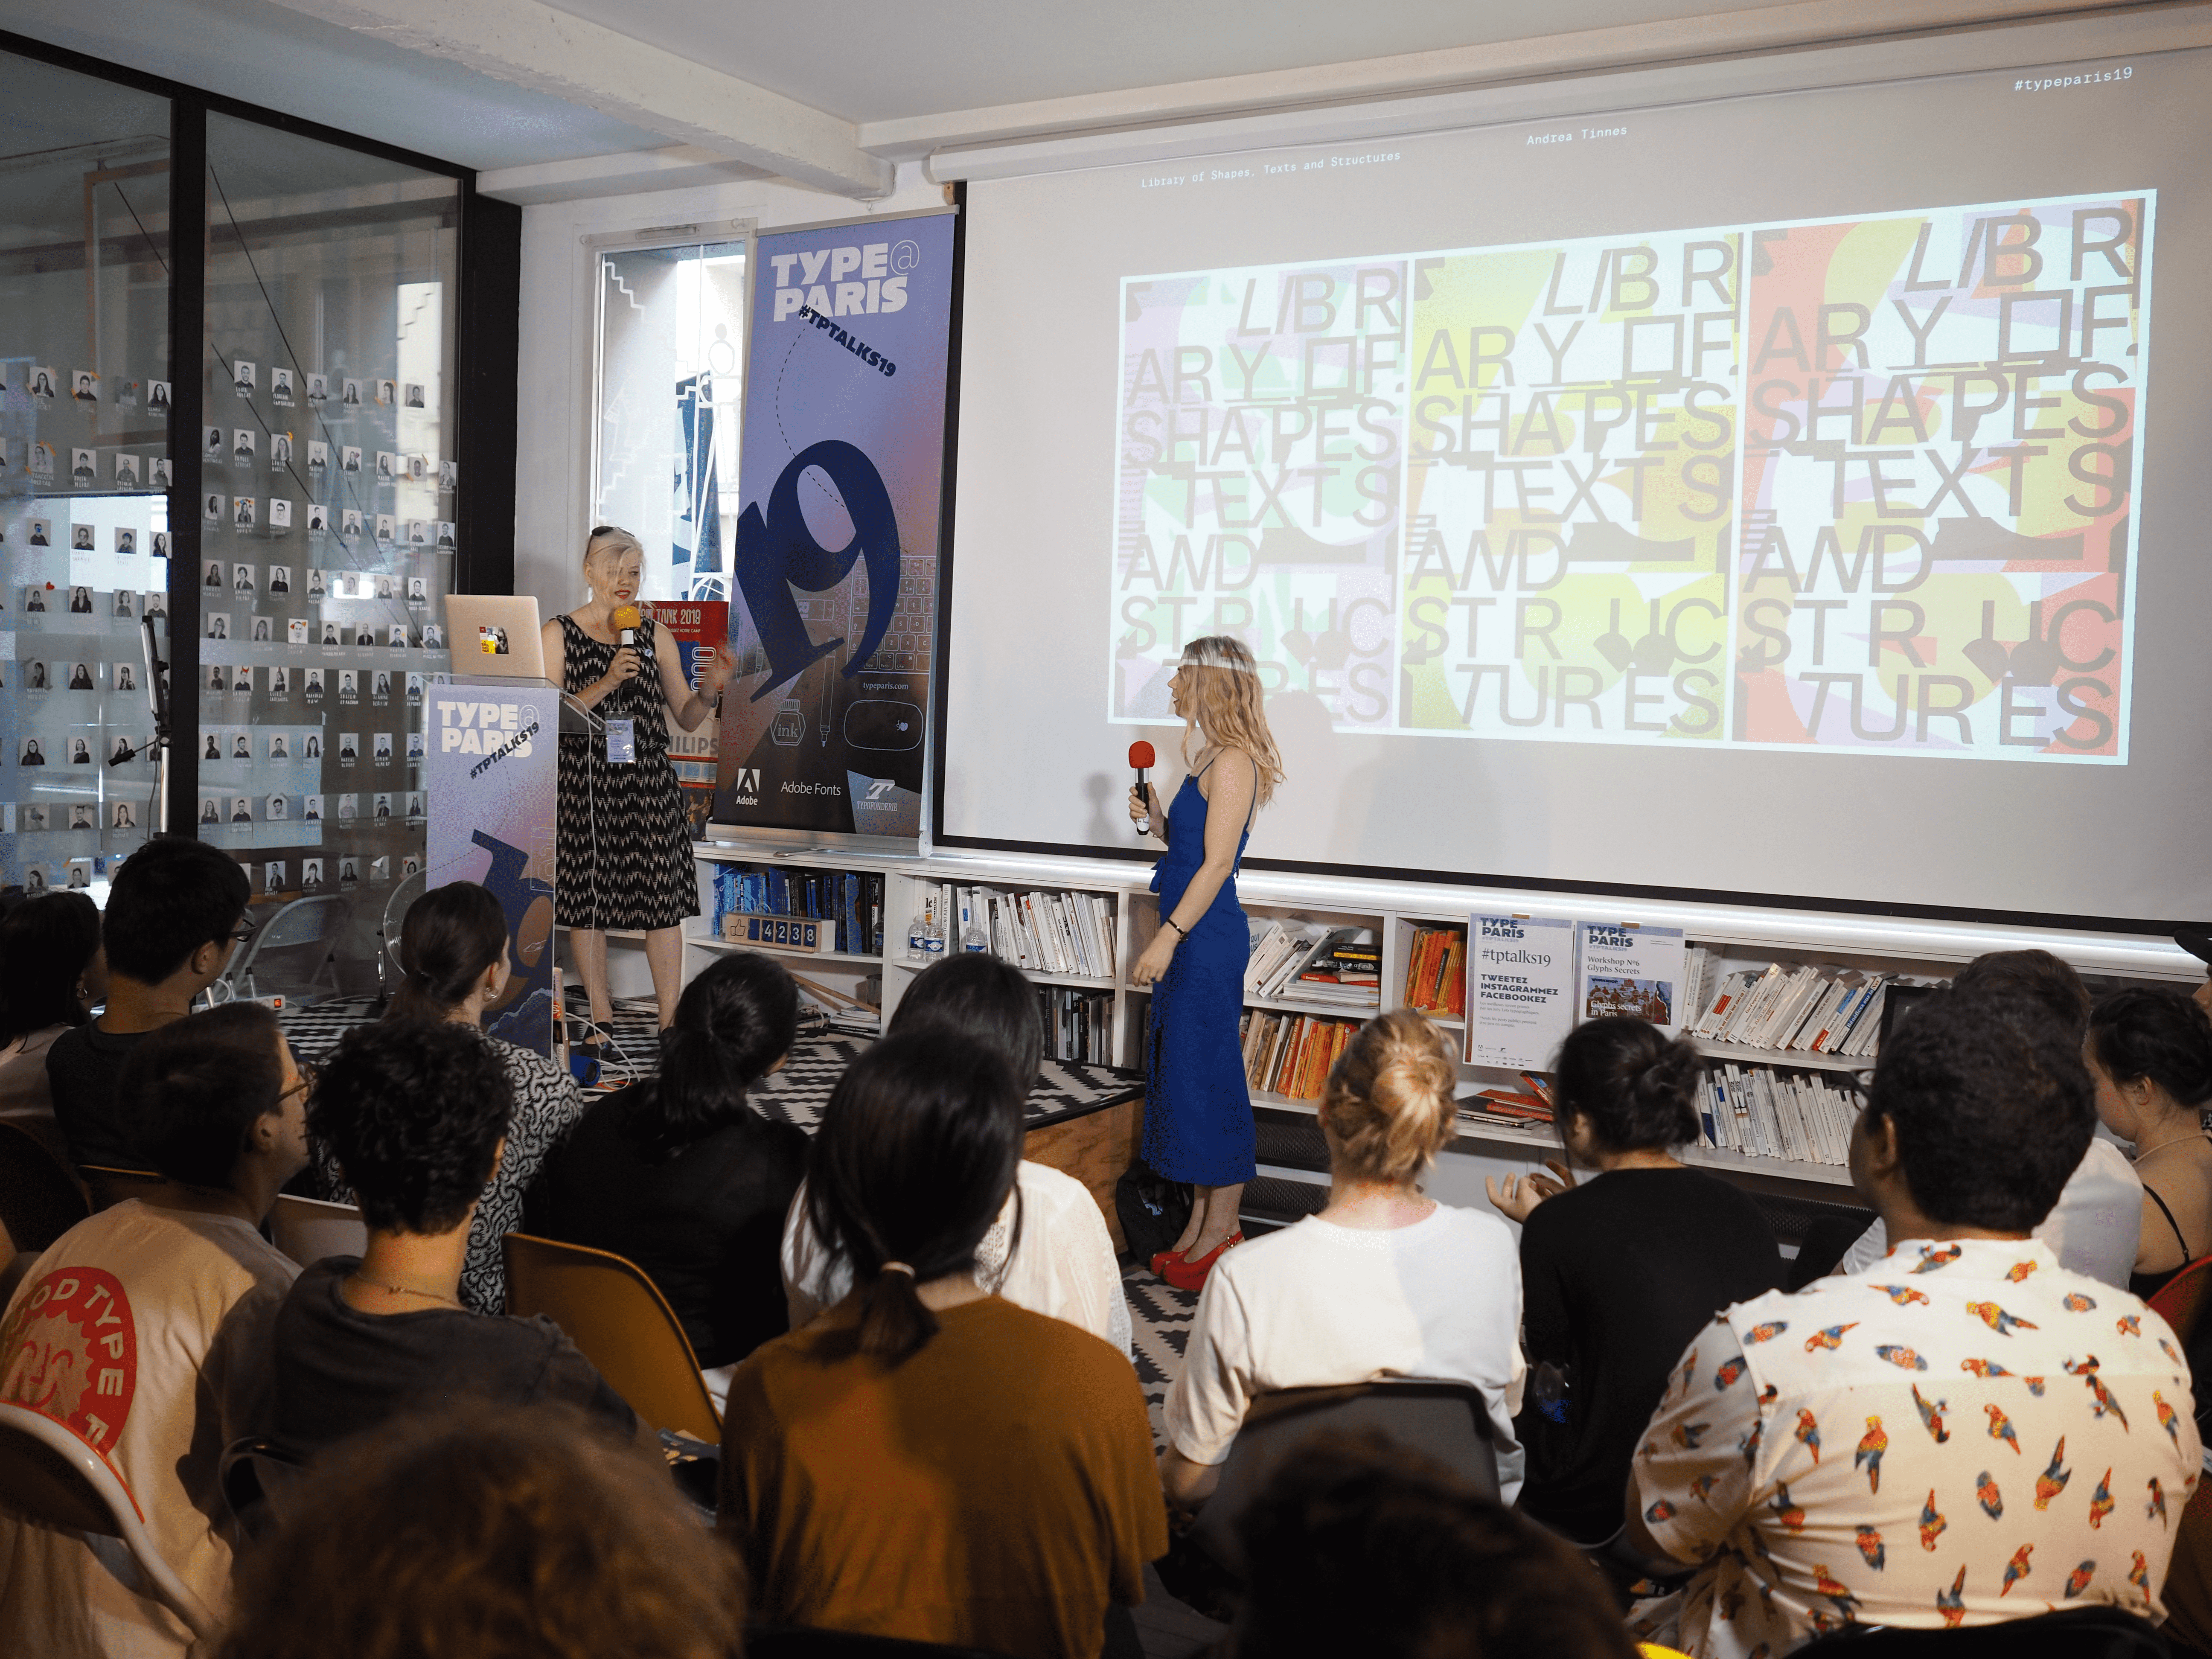 TPTalks19 #3 – Andrea Tinnes + All about TypeParis